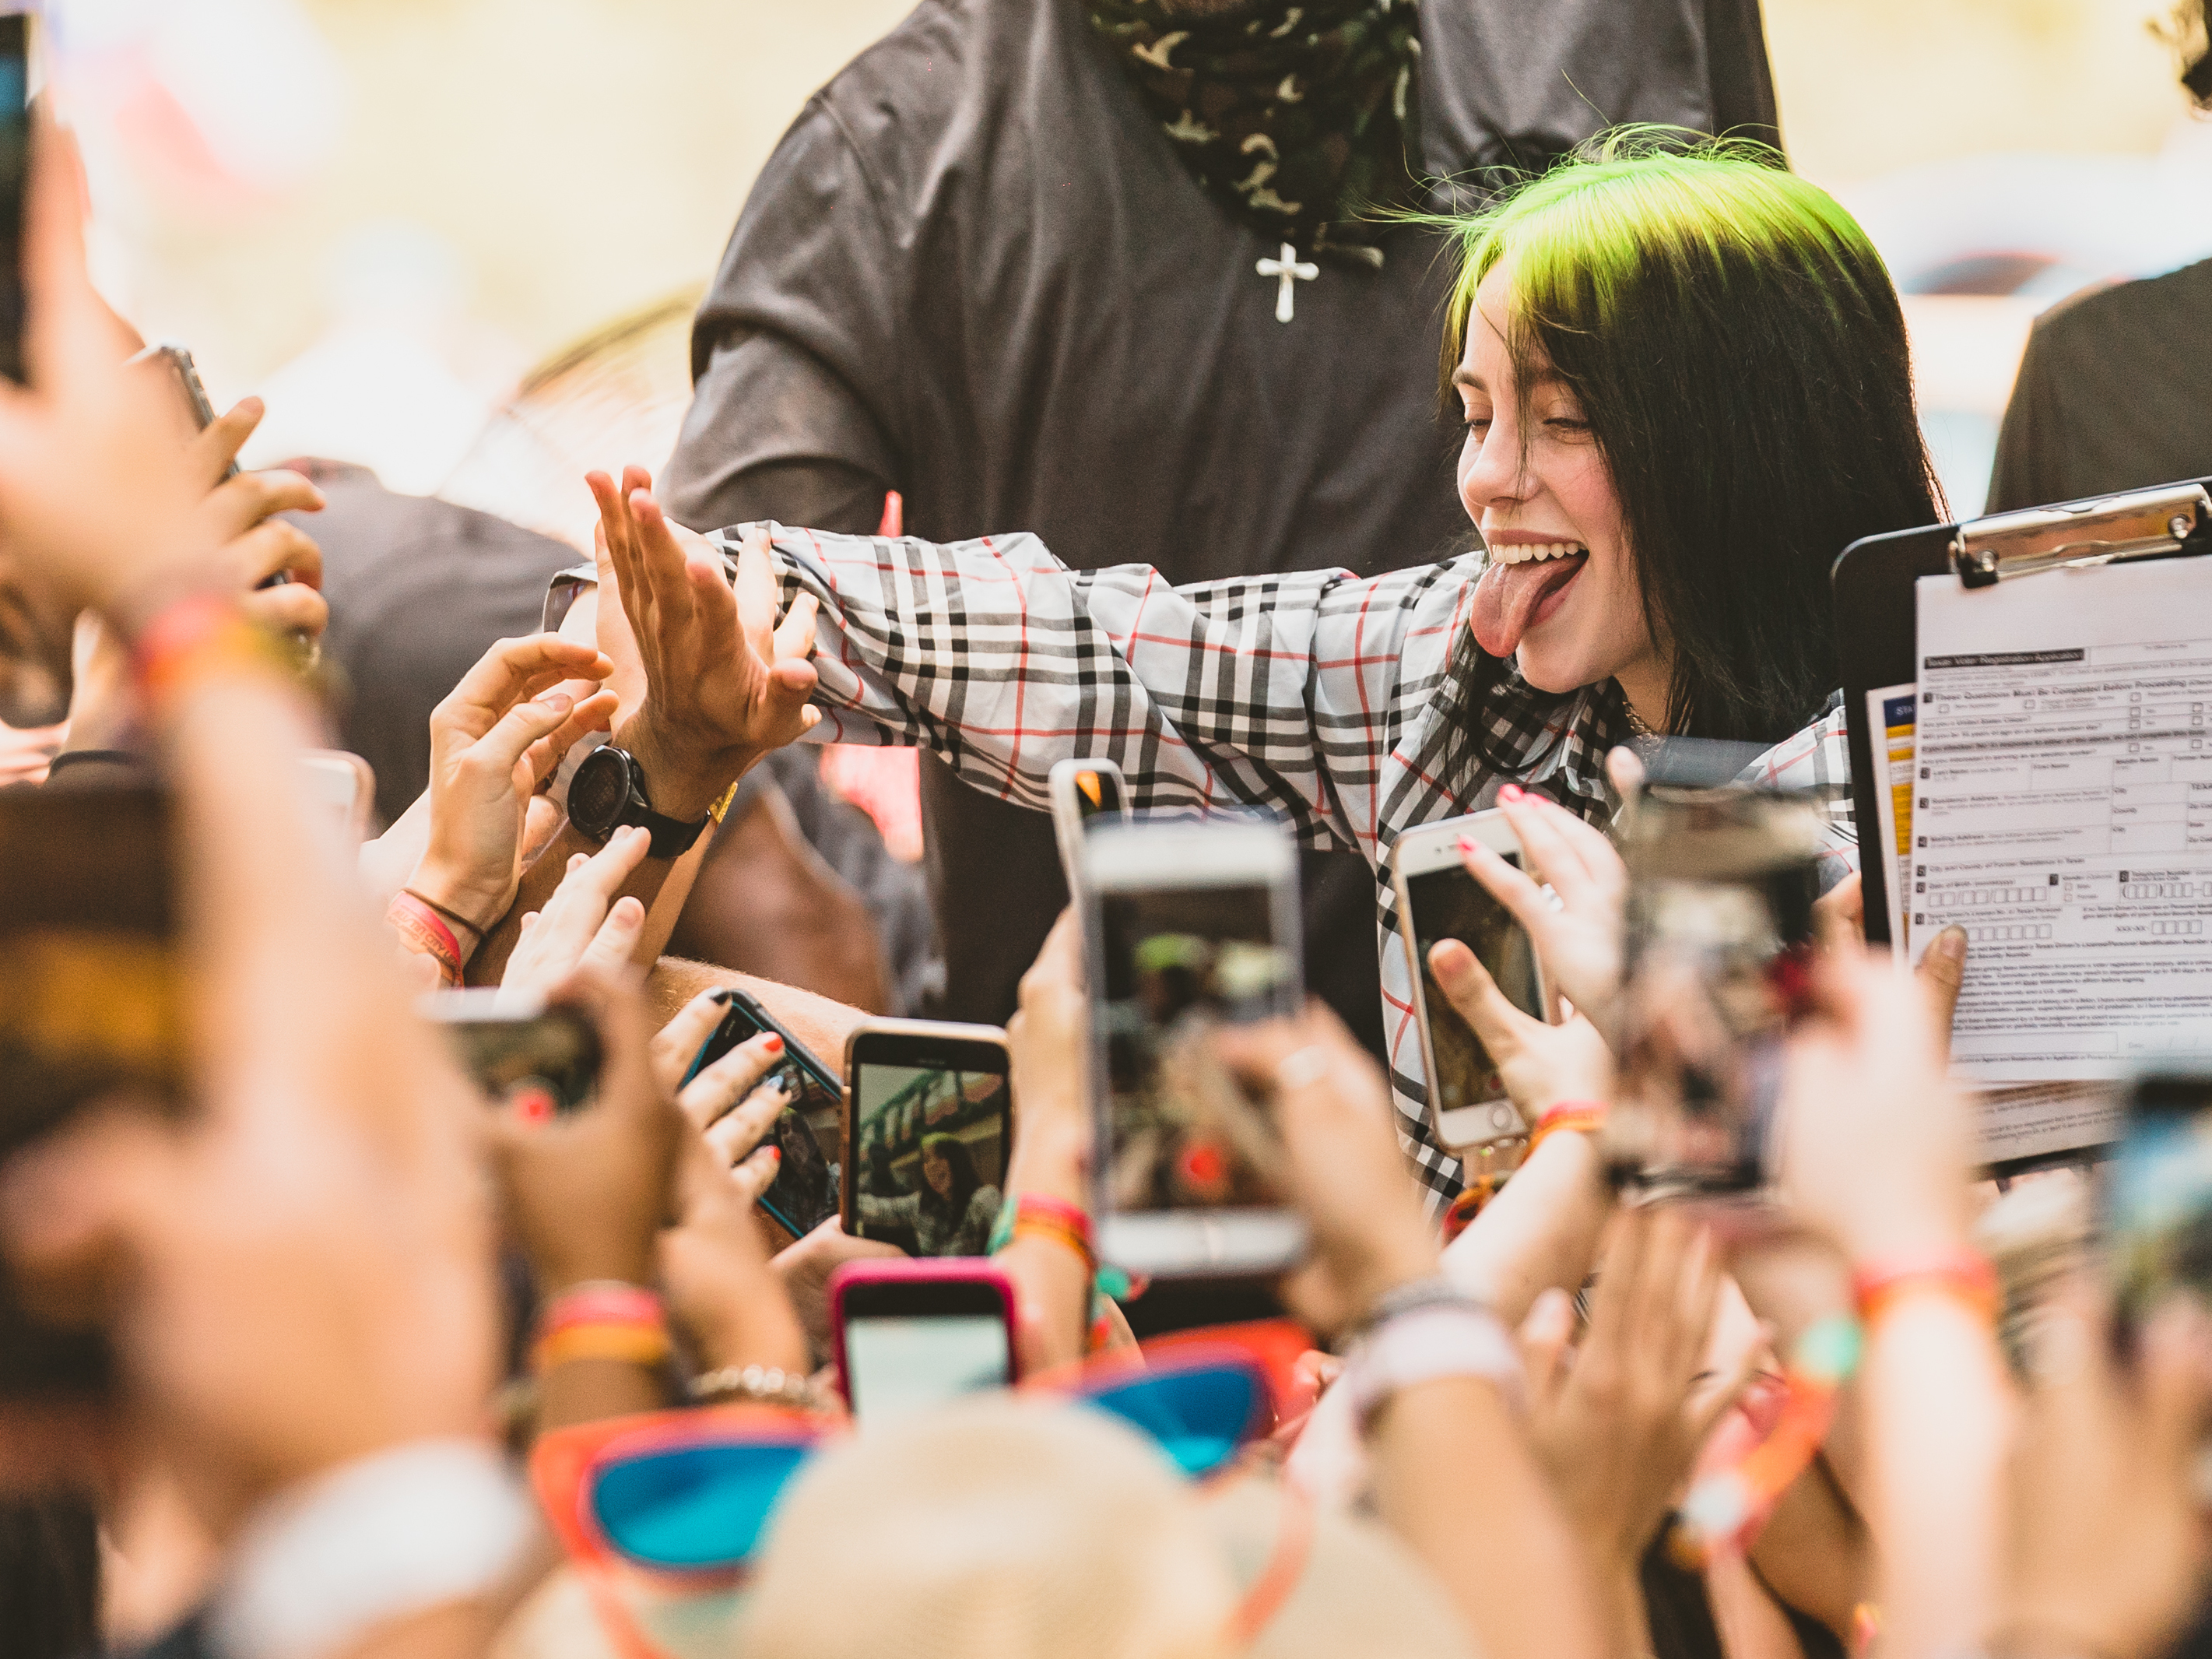 Billie Eilish: 'All I Can Say Is, Be Patient'